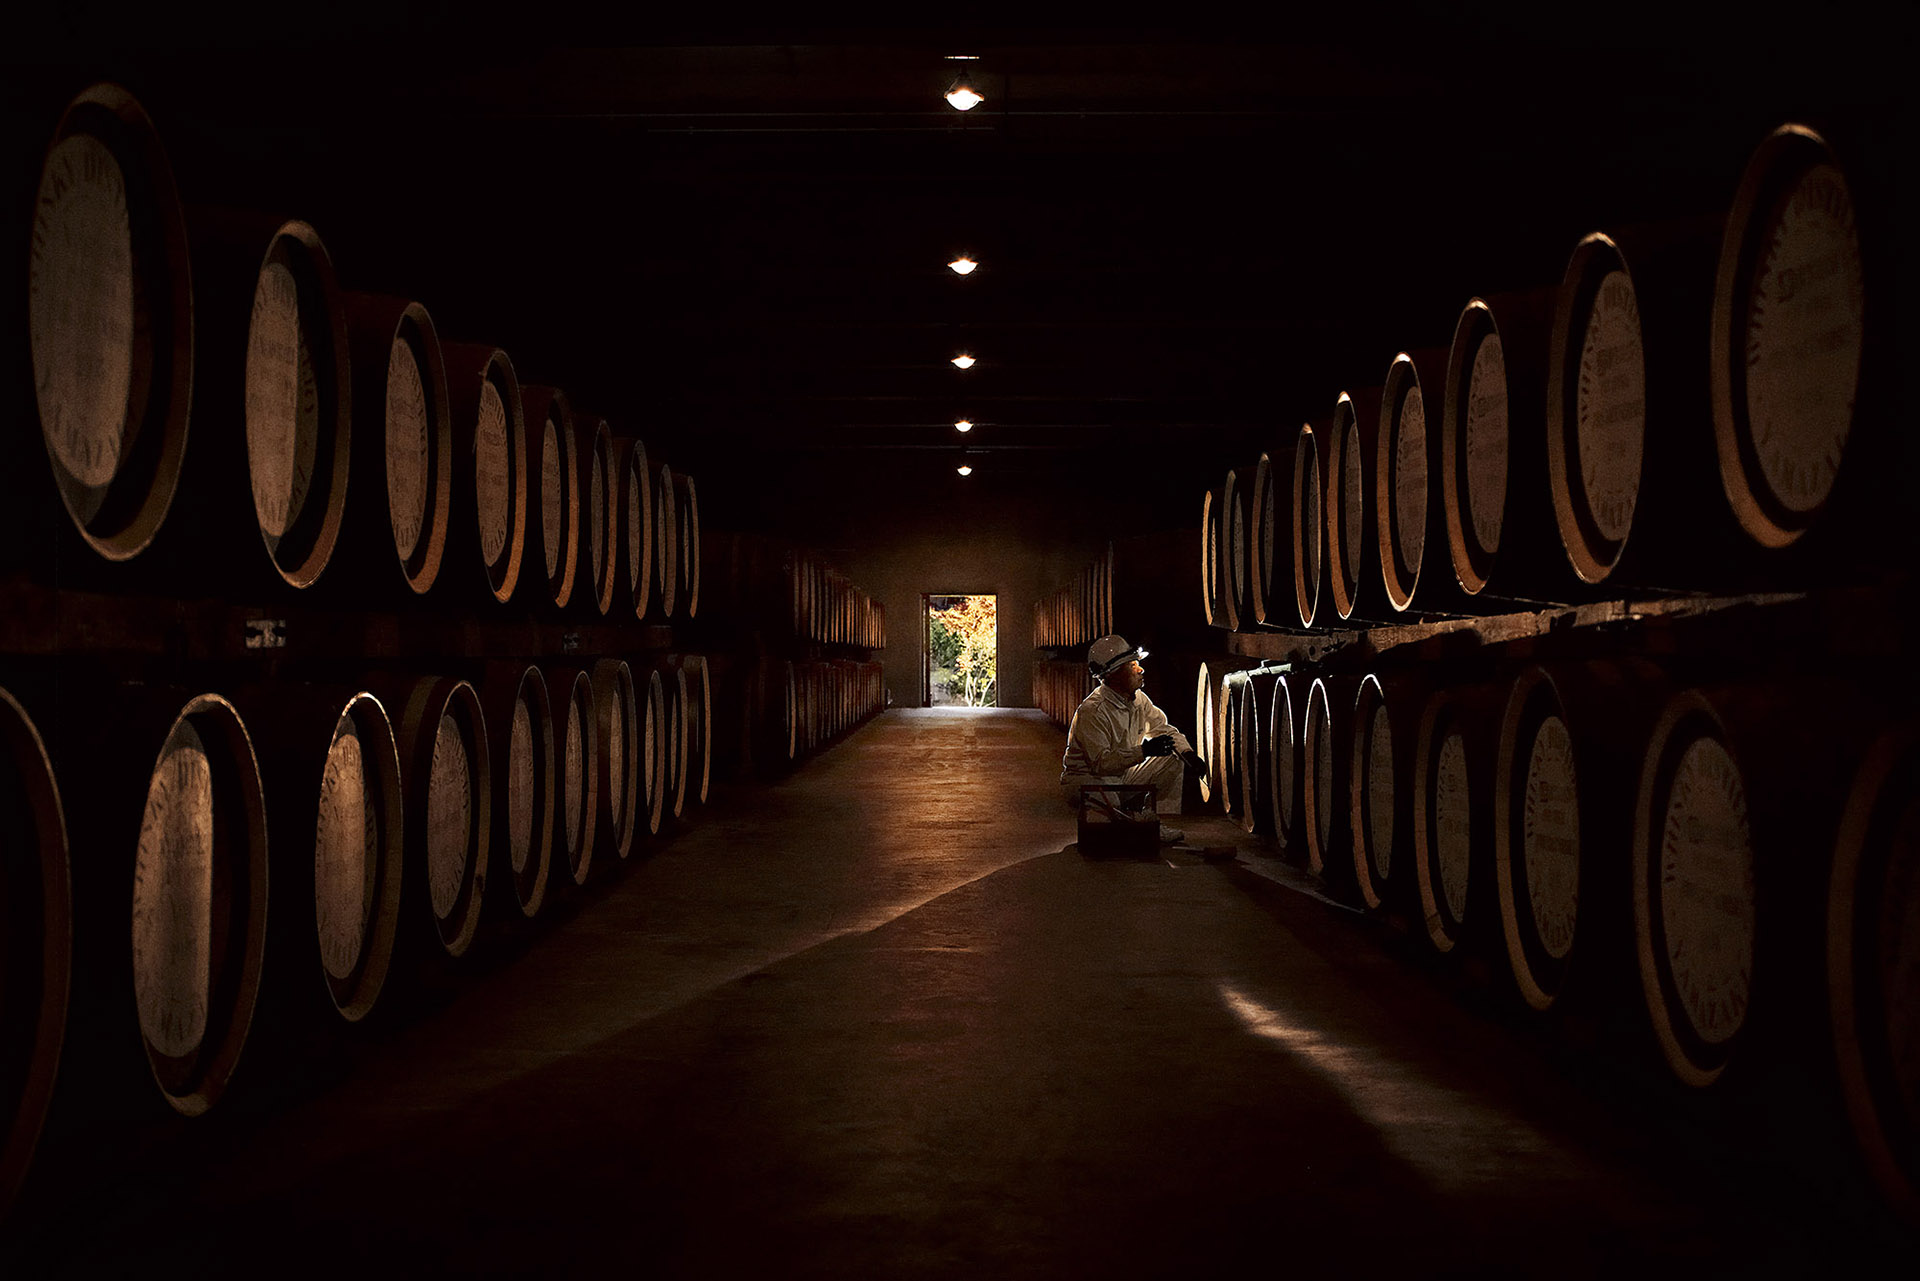 Dark shot of barrels with a door in the background